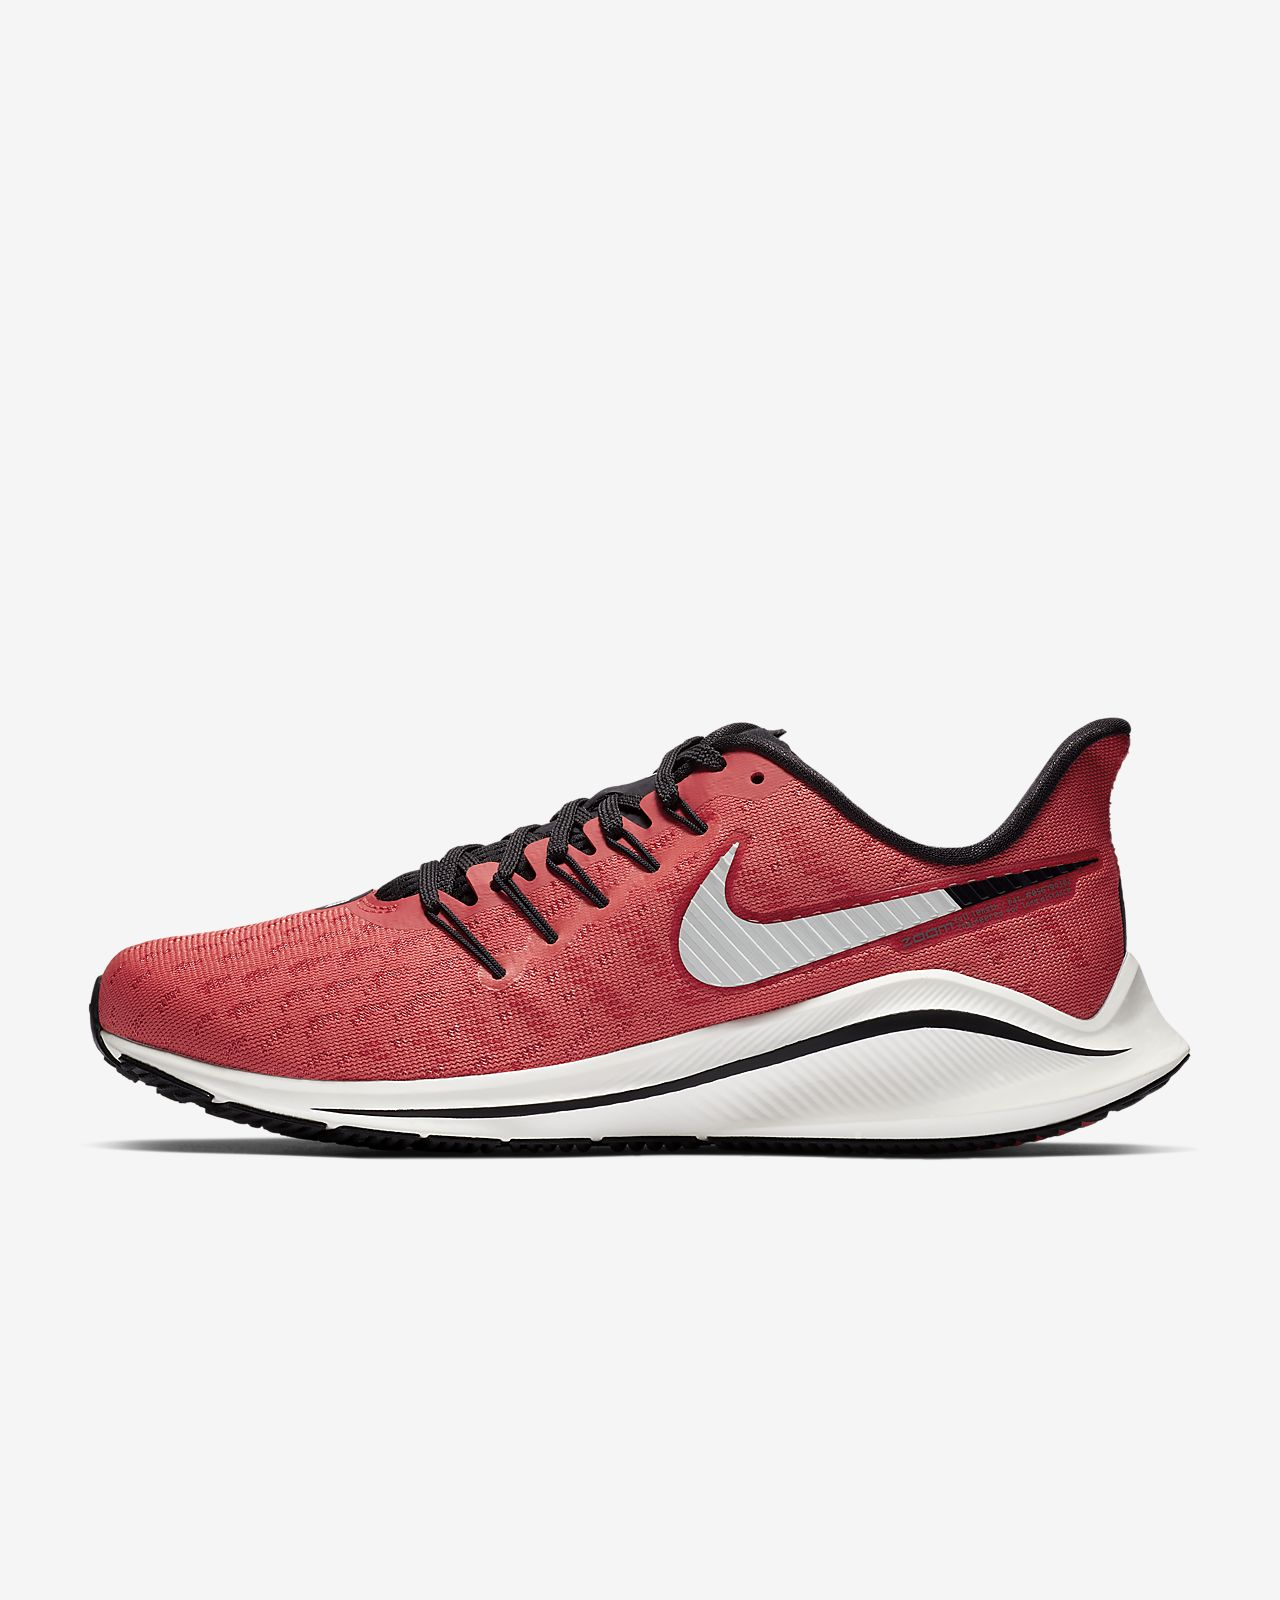 Chaussure de running Nike Air Zoom Vomero 14 pour Femme